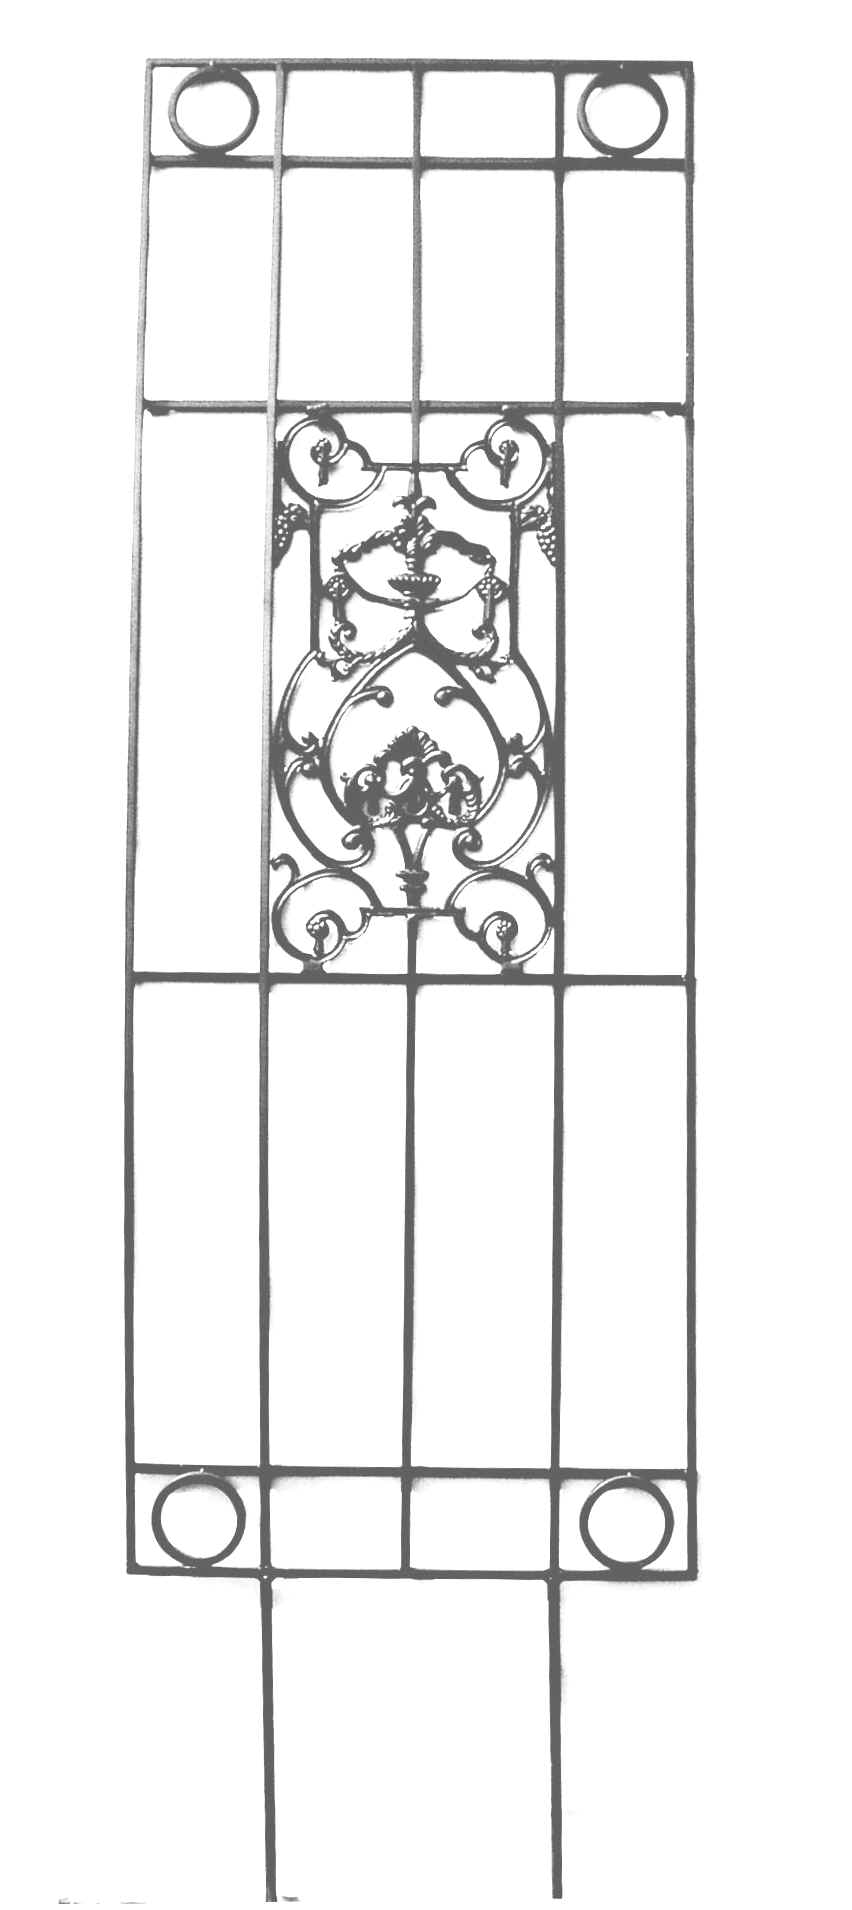 Trellis wrought iron